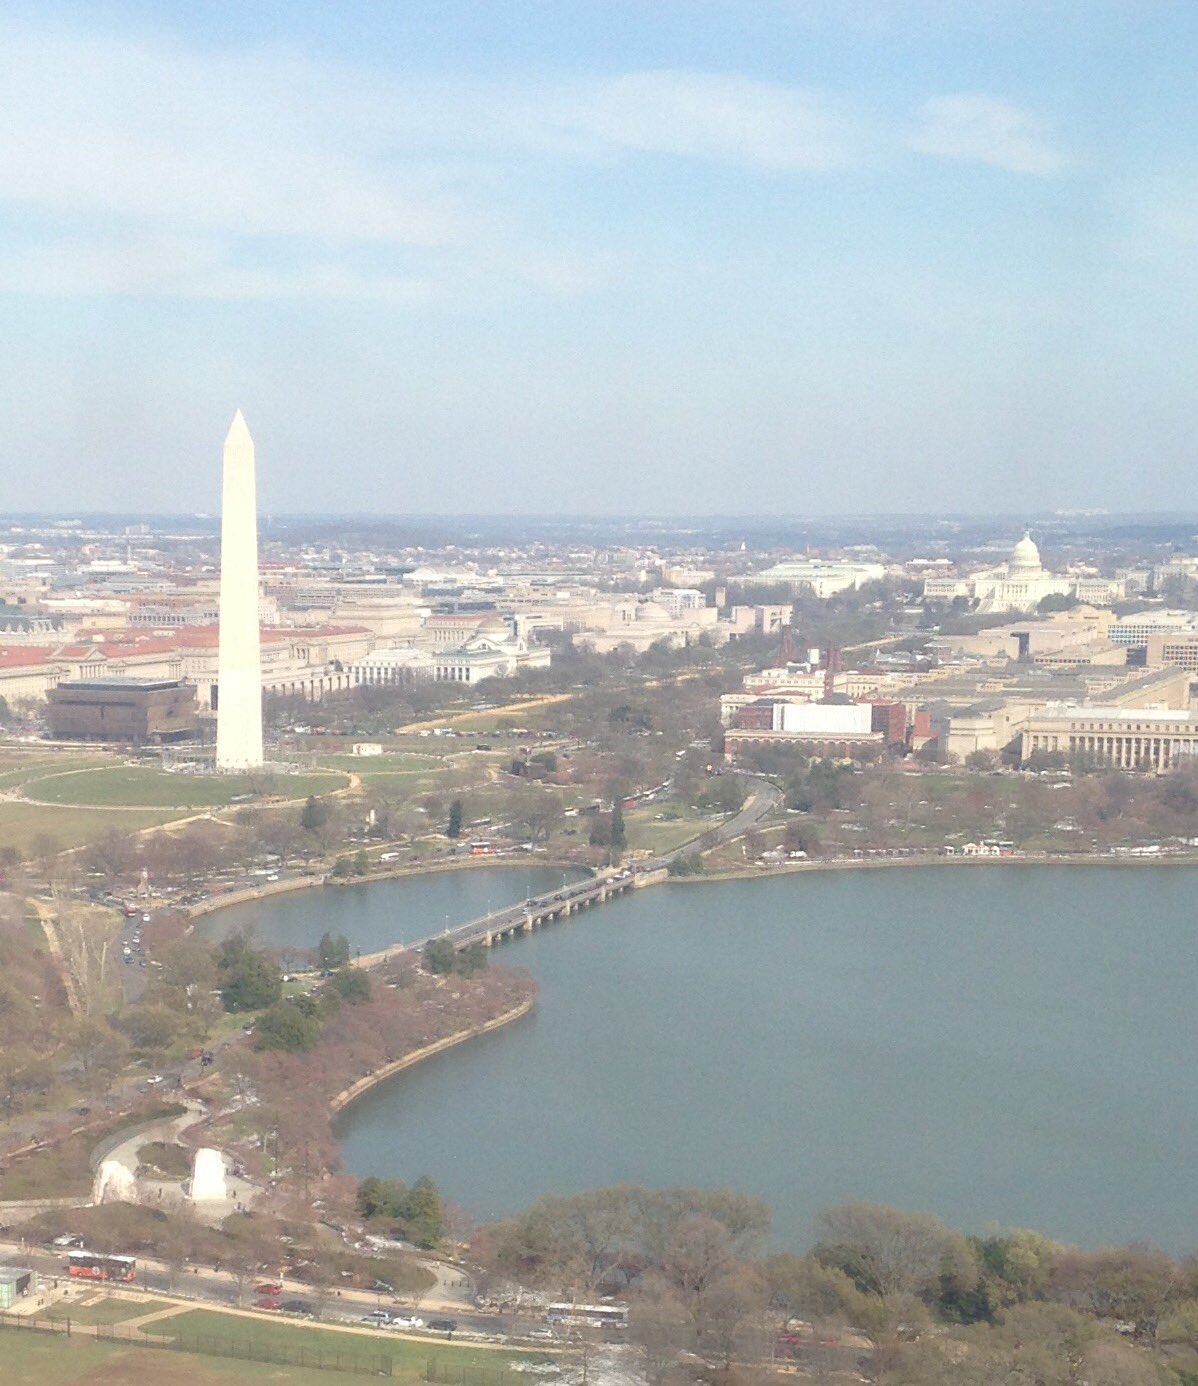 Just arrived in snowy D.C. for the AEP Spring Symposium.   Can't wait to reconnect with national arts ed friends! @AplusSchoolsNC #AEPSPS17 https://t.co/w4DTcmUCFk